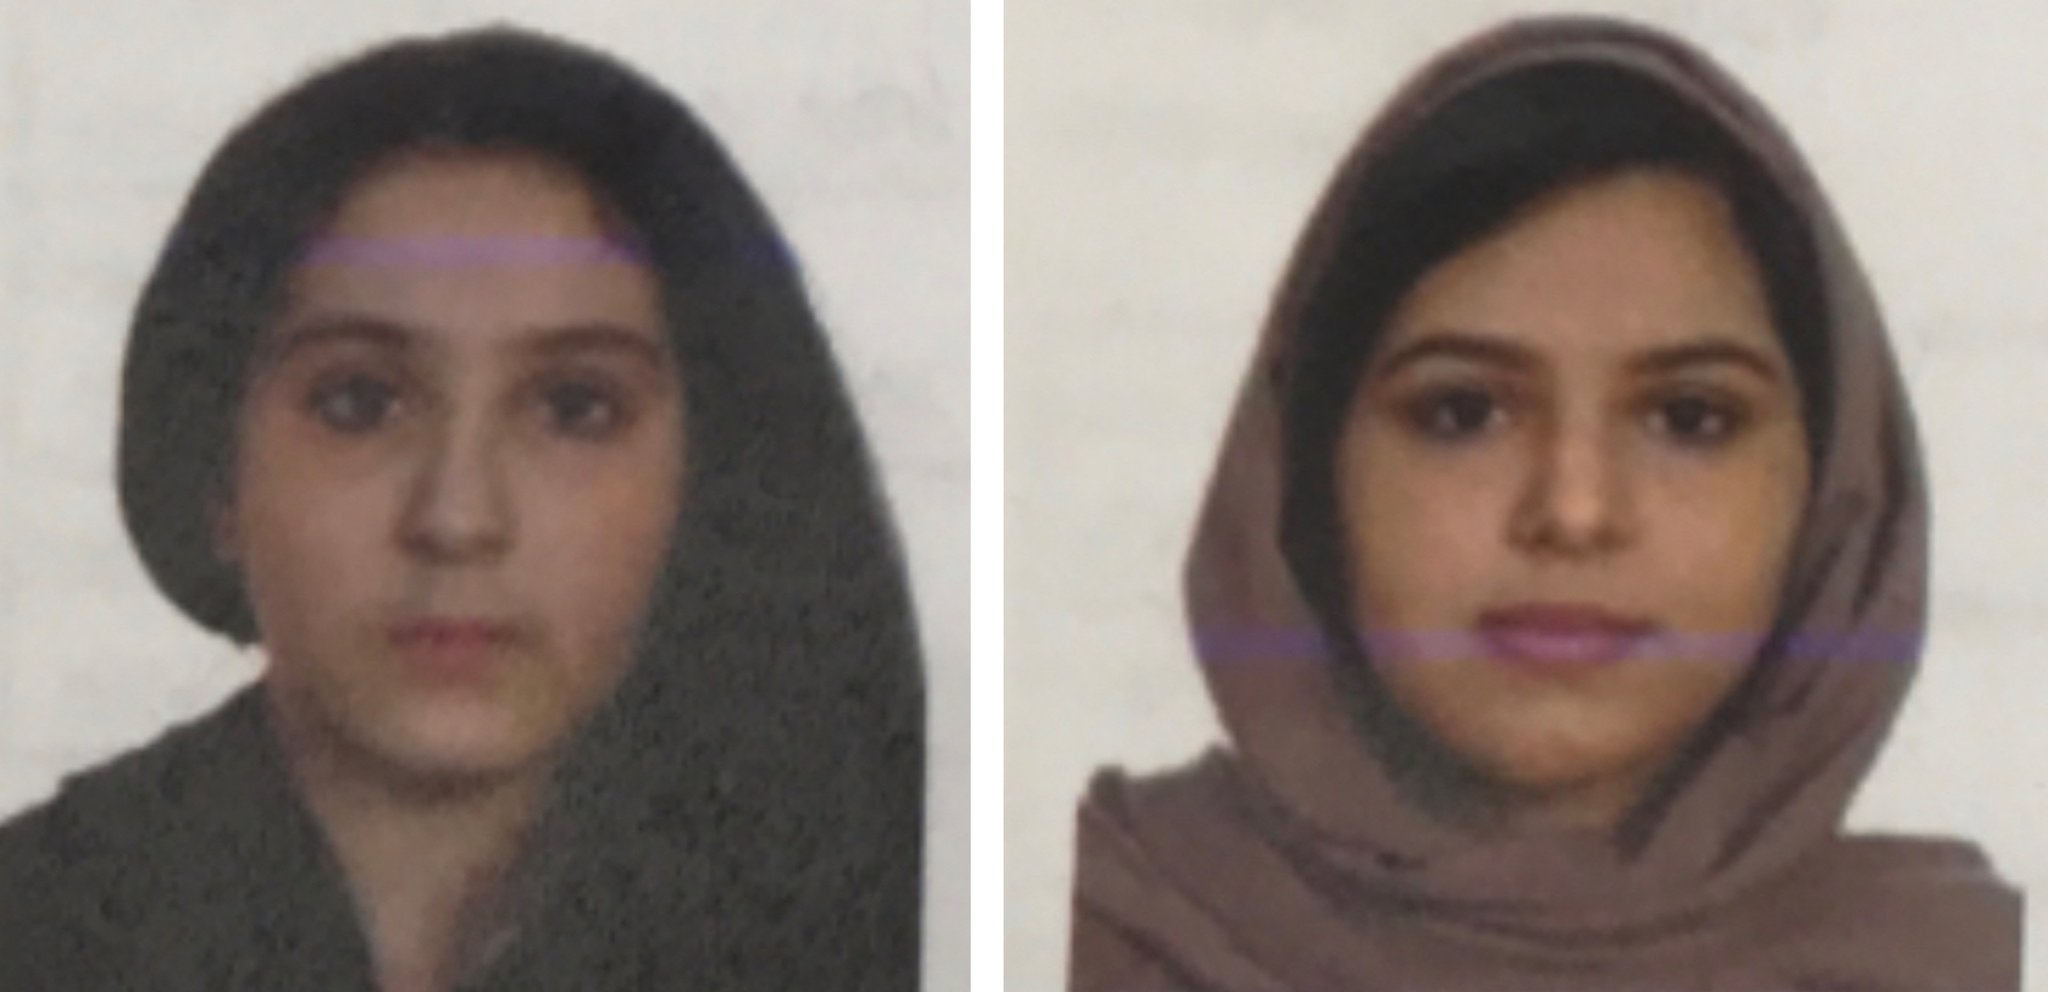 Drowned sisters - The Sisters Found Duct Taped Together In The Hudson Were